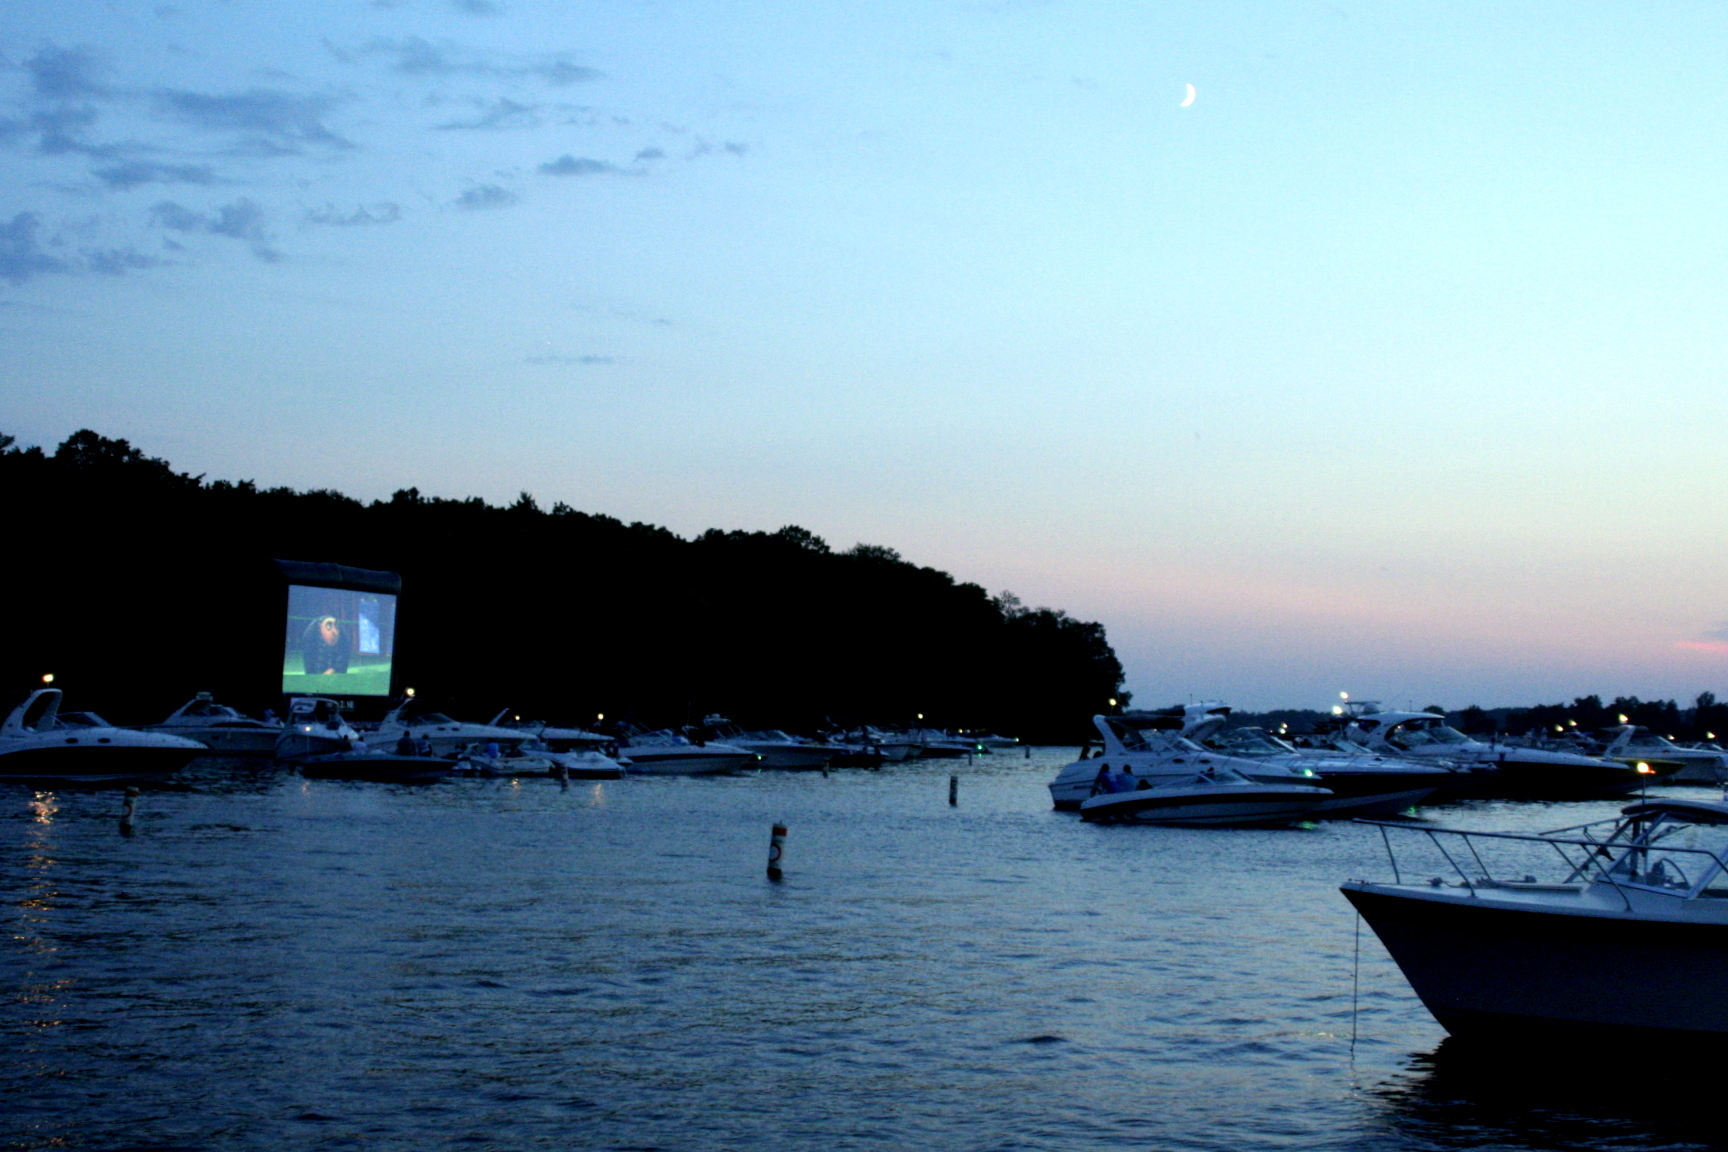 Big Island Movie Night - Lake Minnetonka